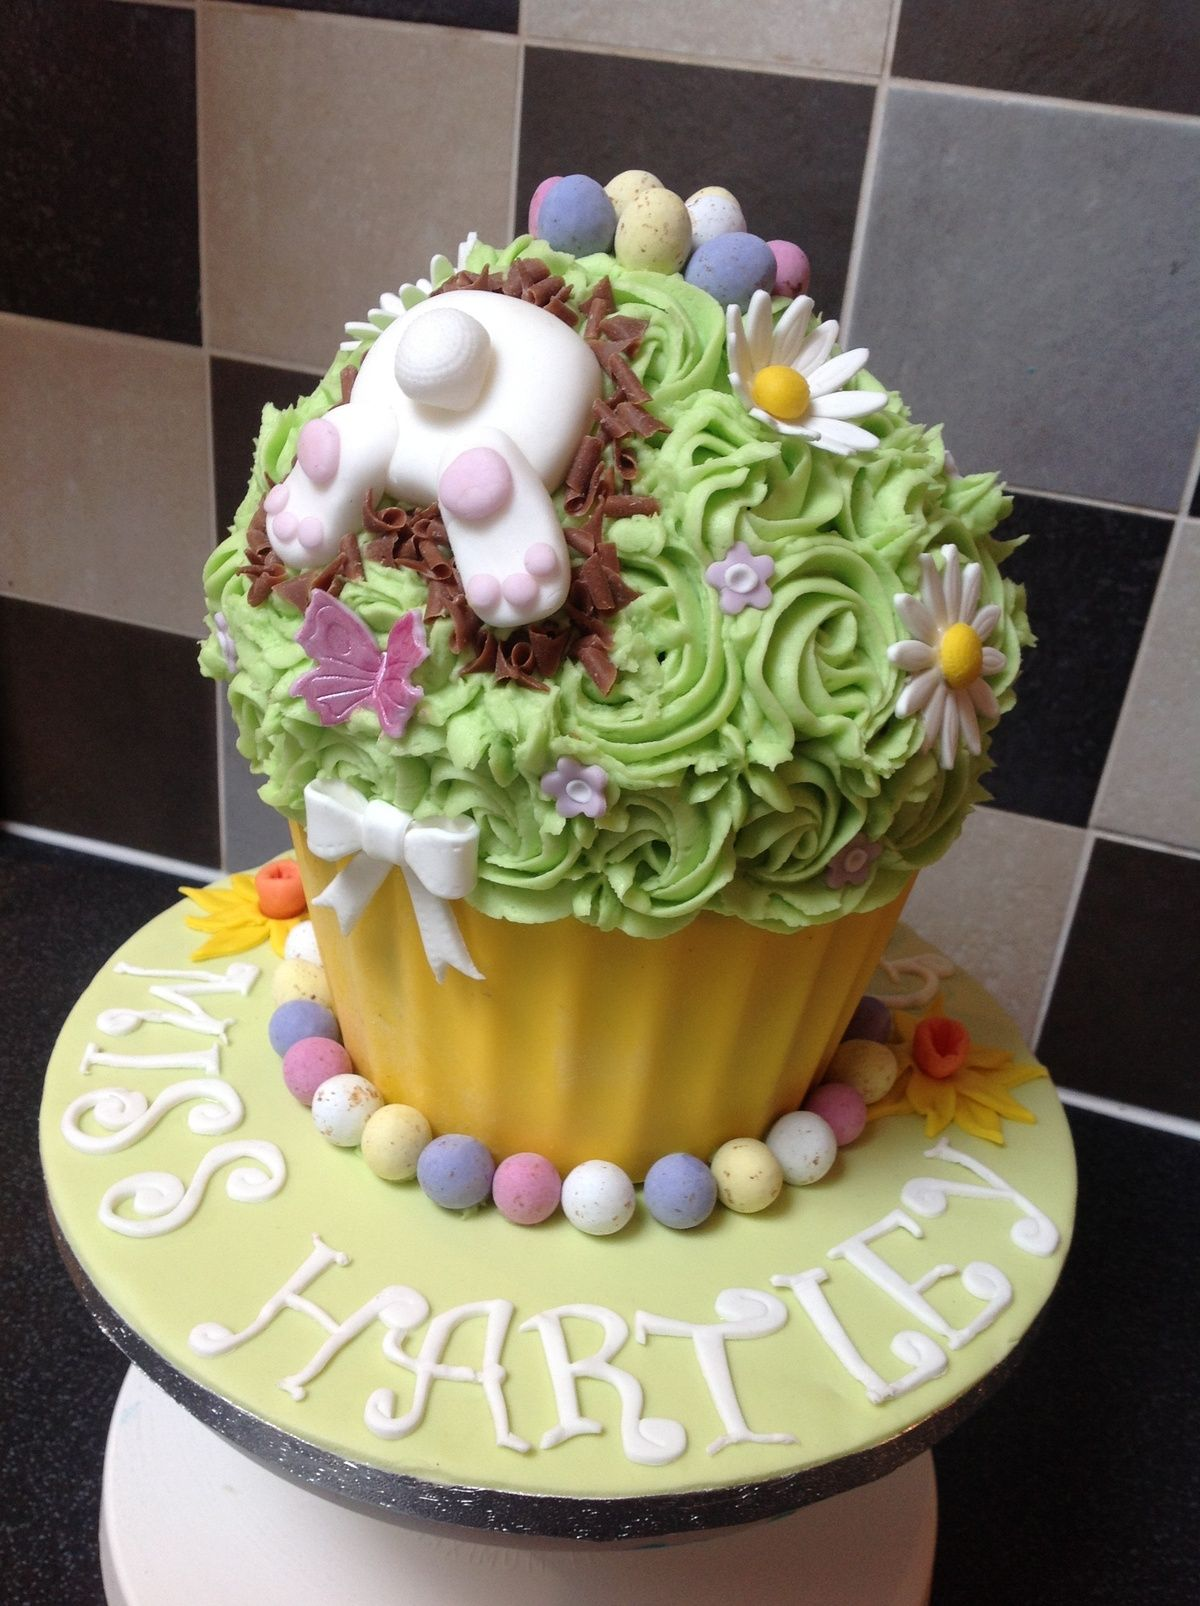 Giant Cupcake Decorating Ideas For Easter ...